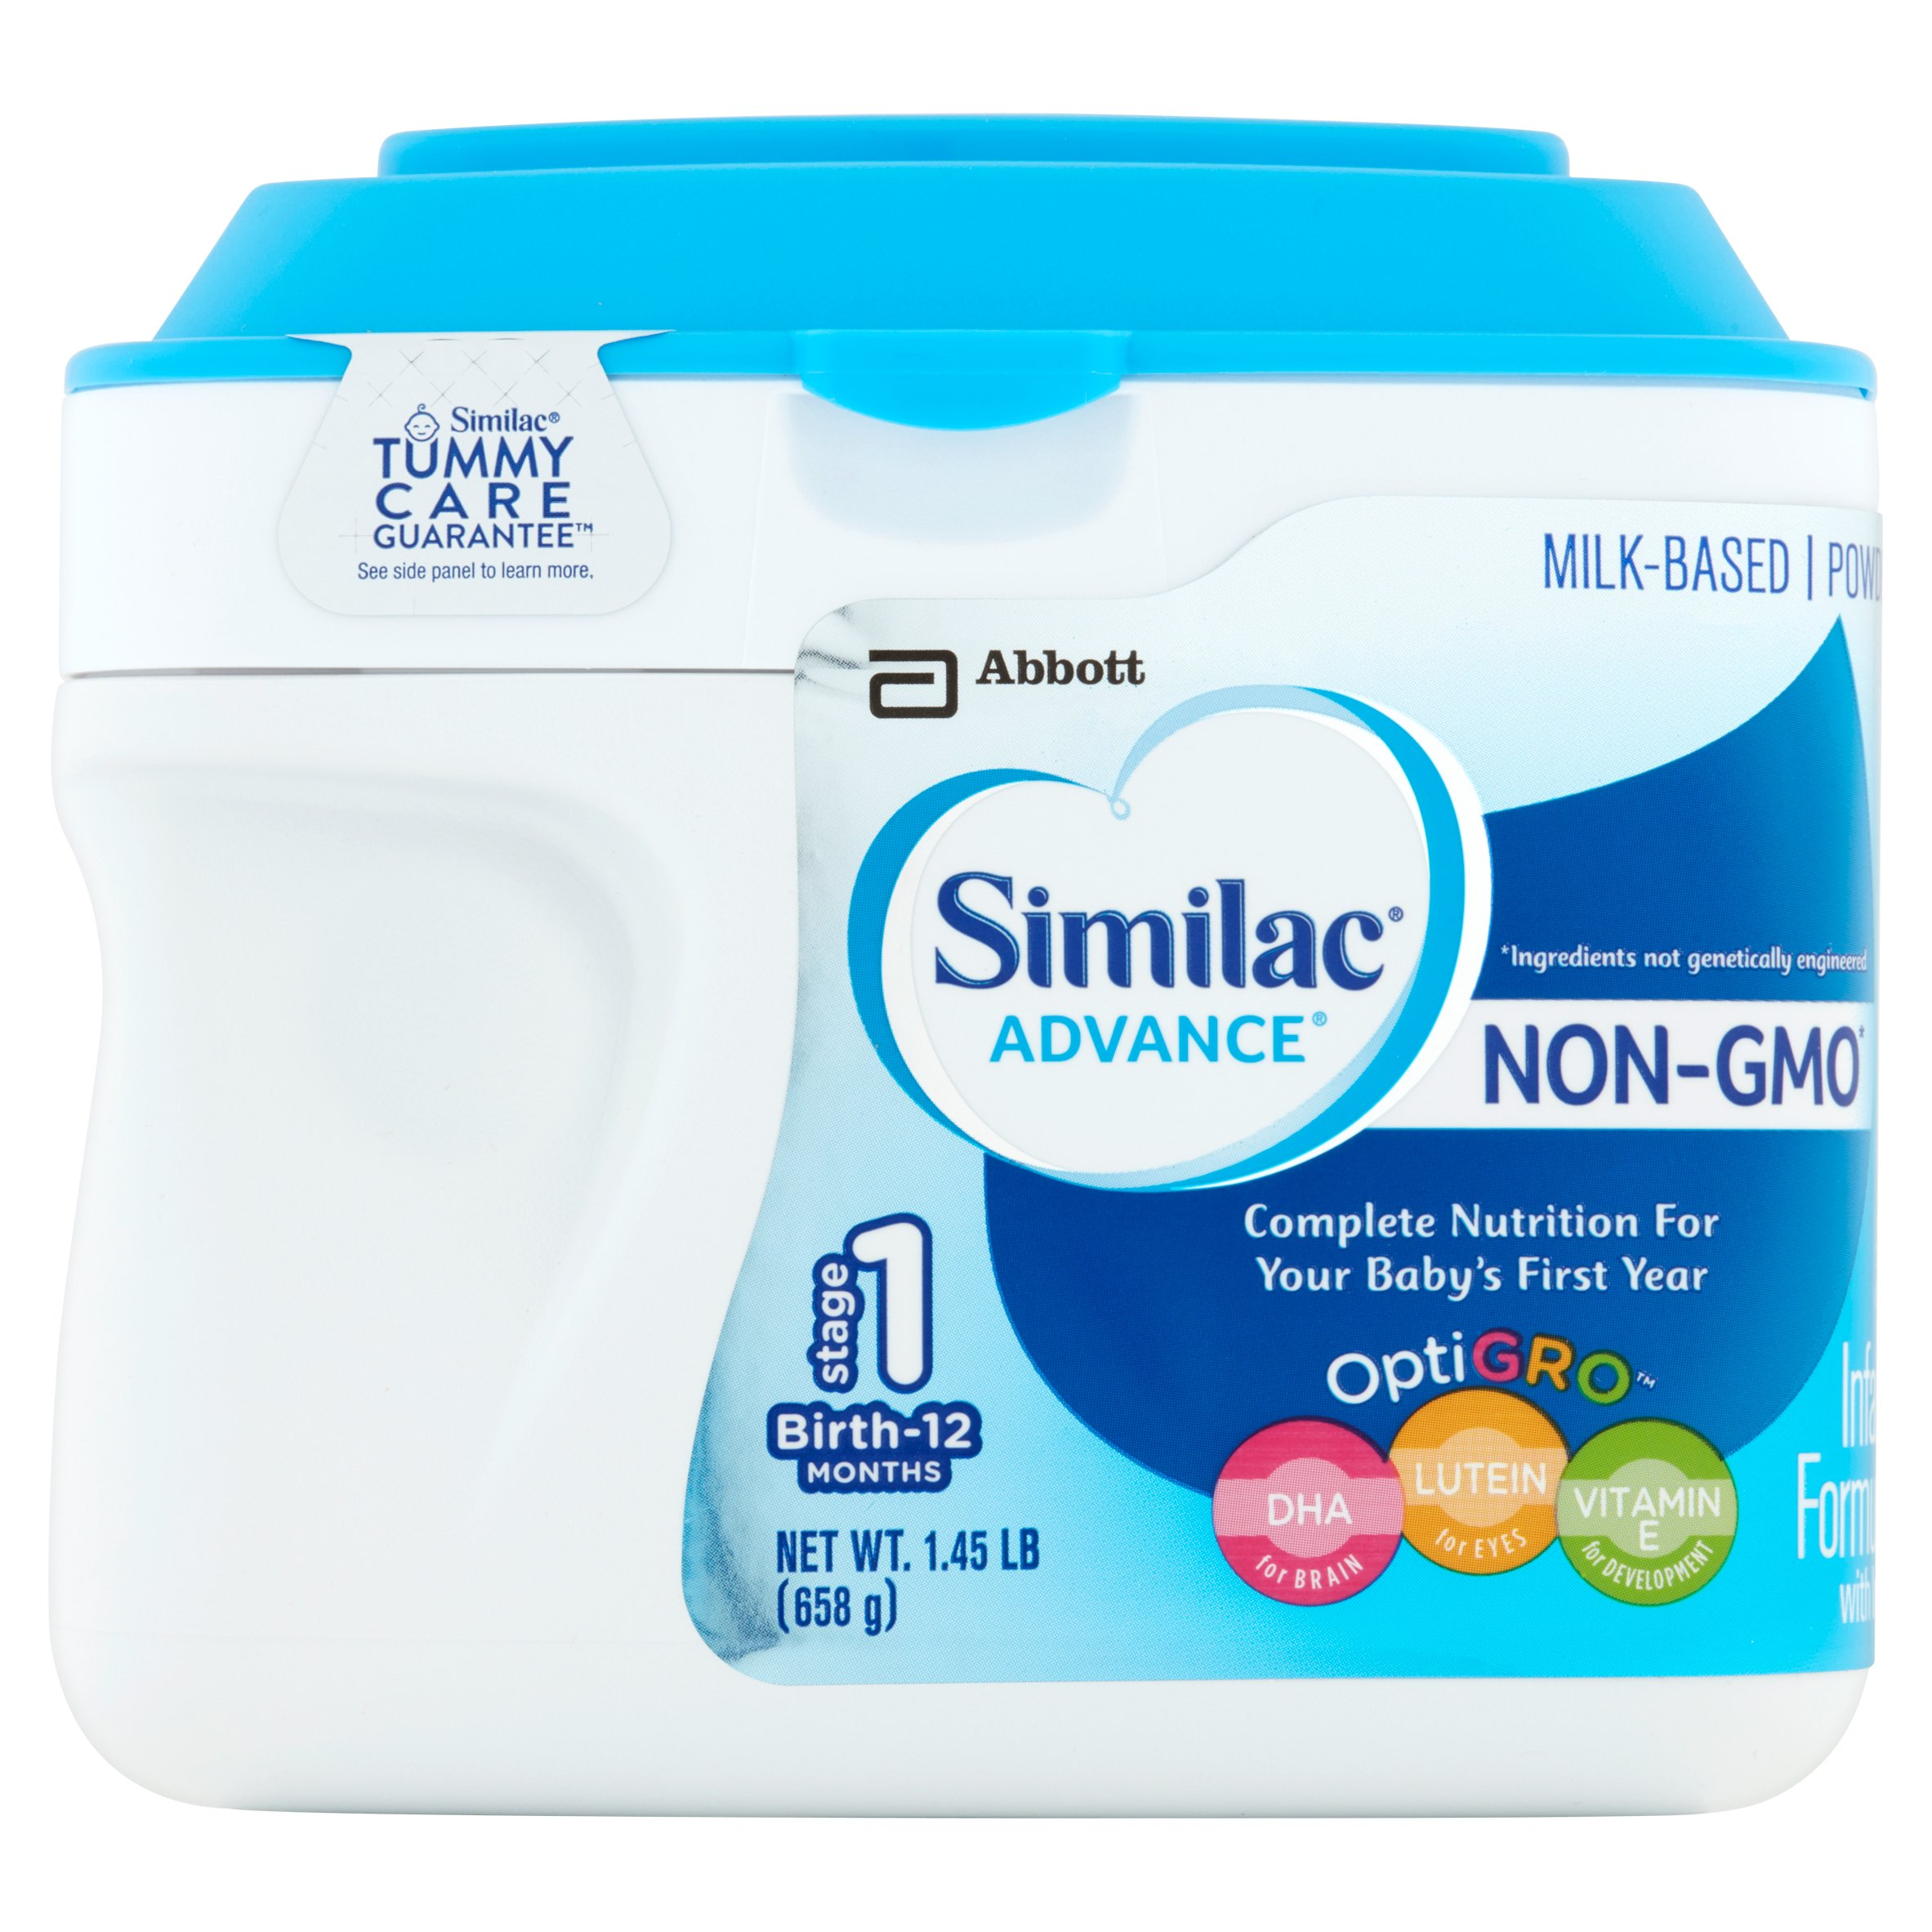 Similac Advance NON-GMO (Pack of 6) Infant Formula with Iron, Powder, 1.45 lb